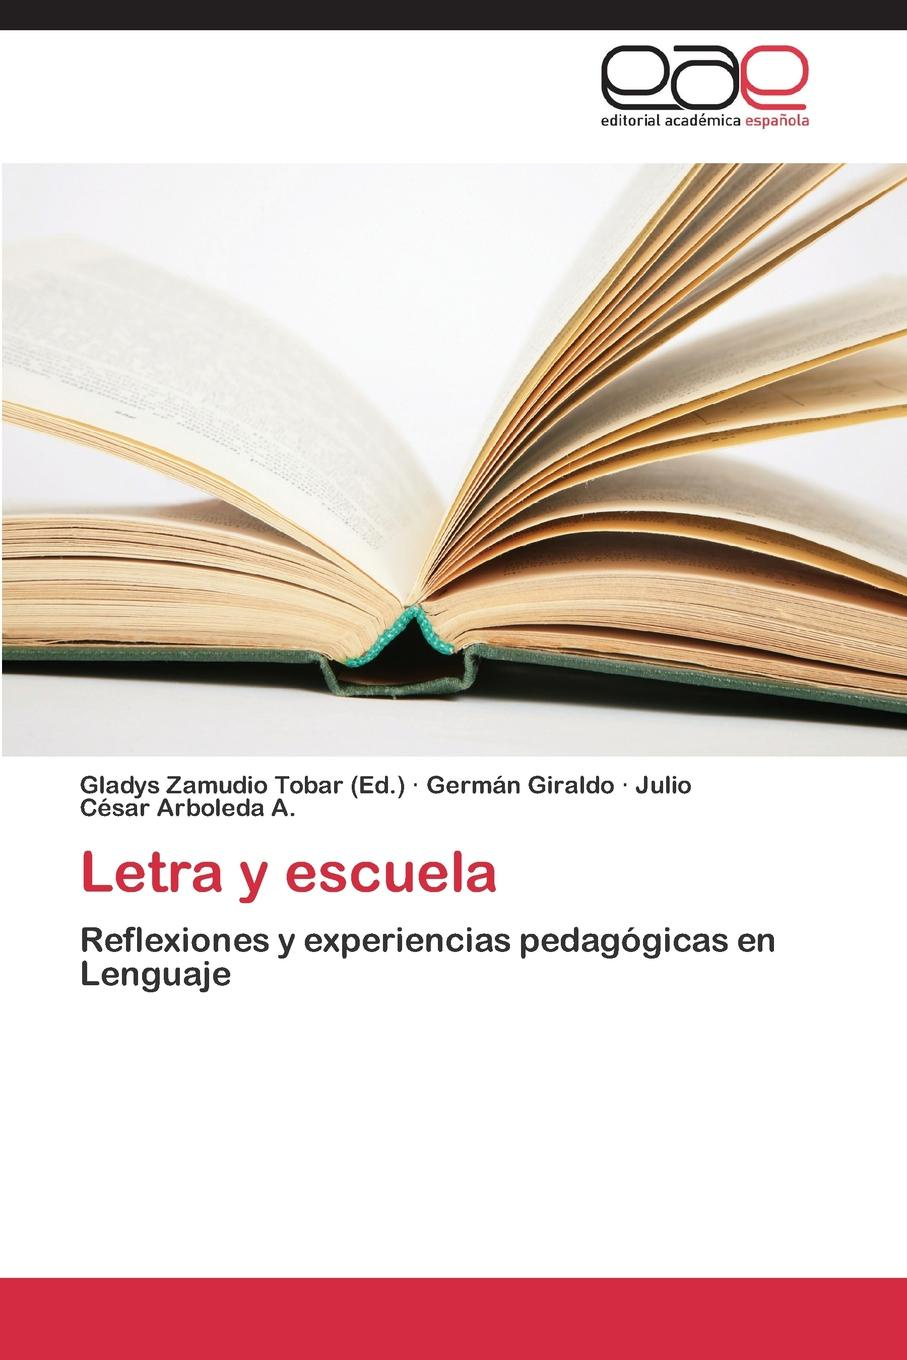 Giraldo German, Arboleda a. Julio Cesar Letra y Escuela friedrich ast lexicon platonicum sive vocum platonicarum index latin edition